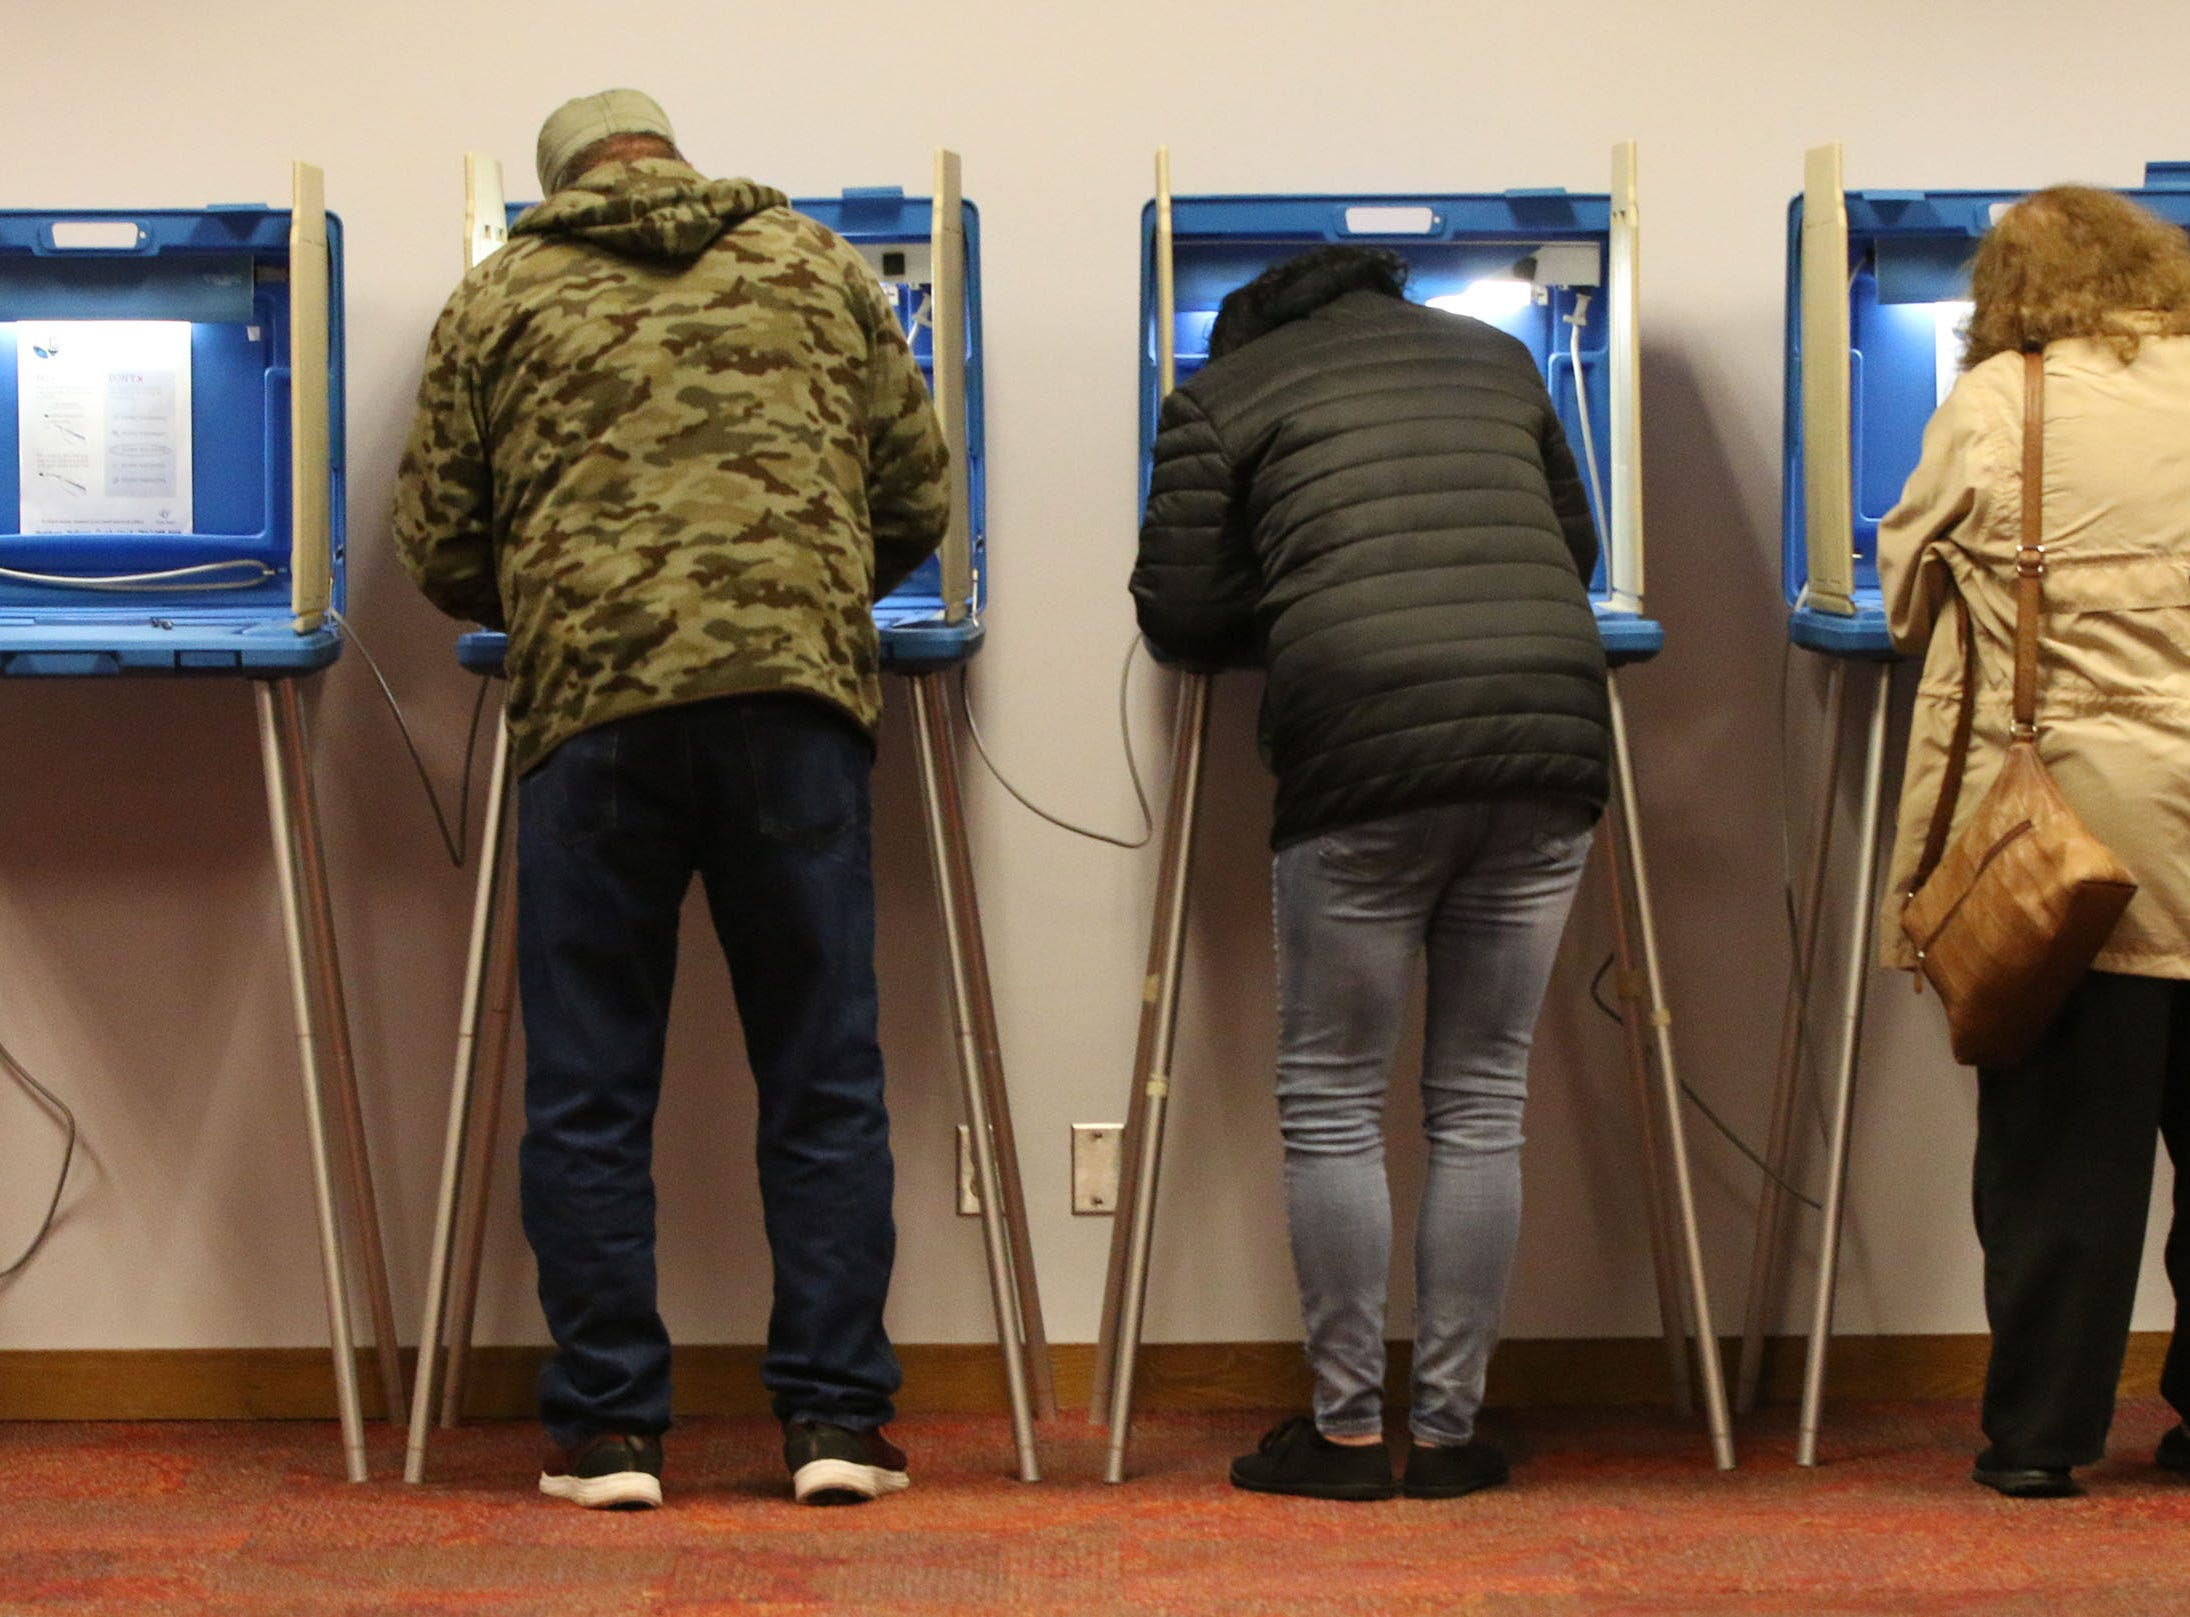 Voters cast their ballots at Mead Public Library poll, Tuesday, November 6, 2018, in Sheboygan, Wis.